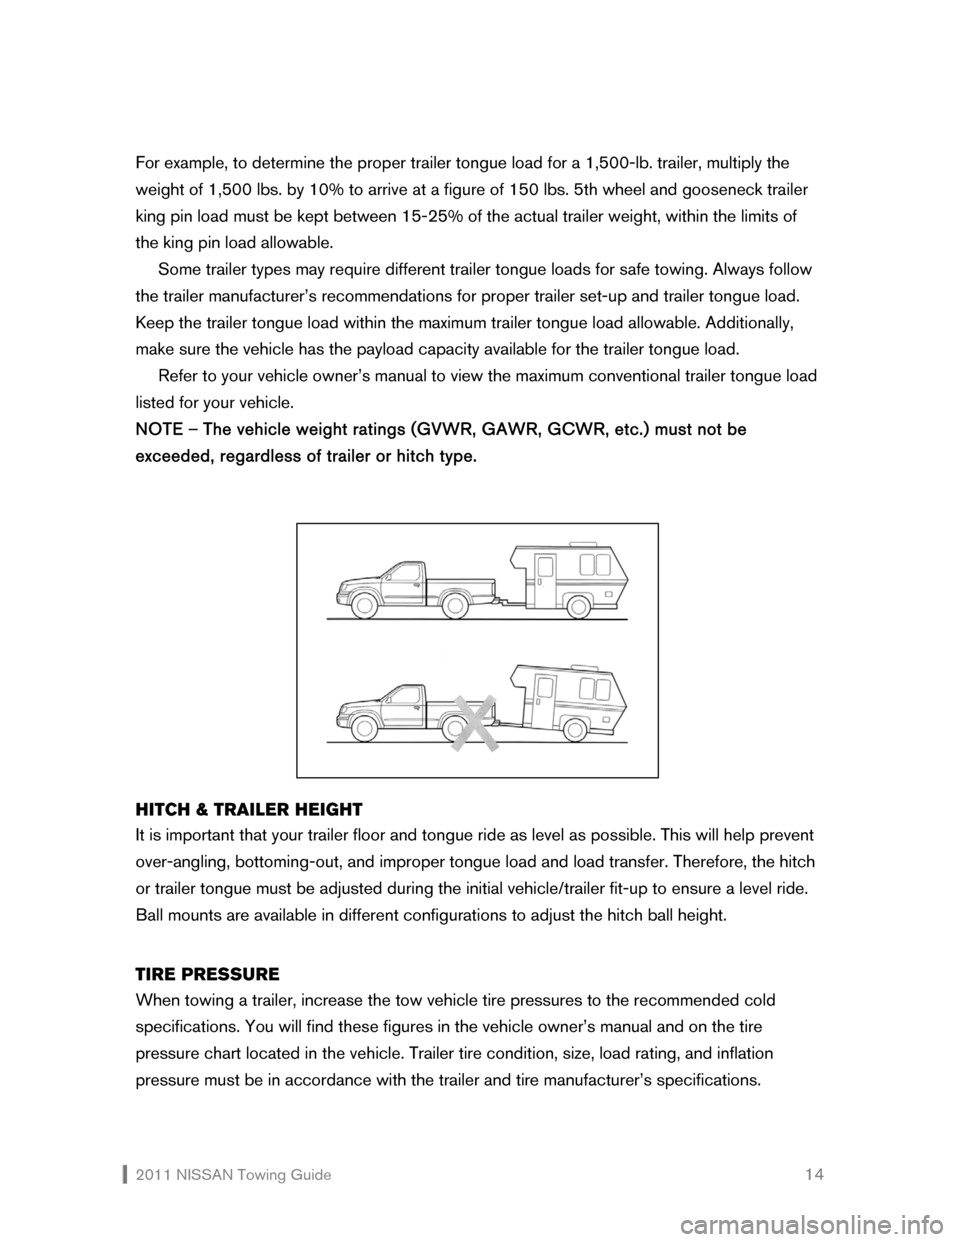 NISSAN SENTRA 2011 B16 / 6.G Towing Guide, Page 15